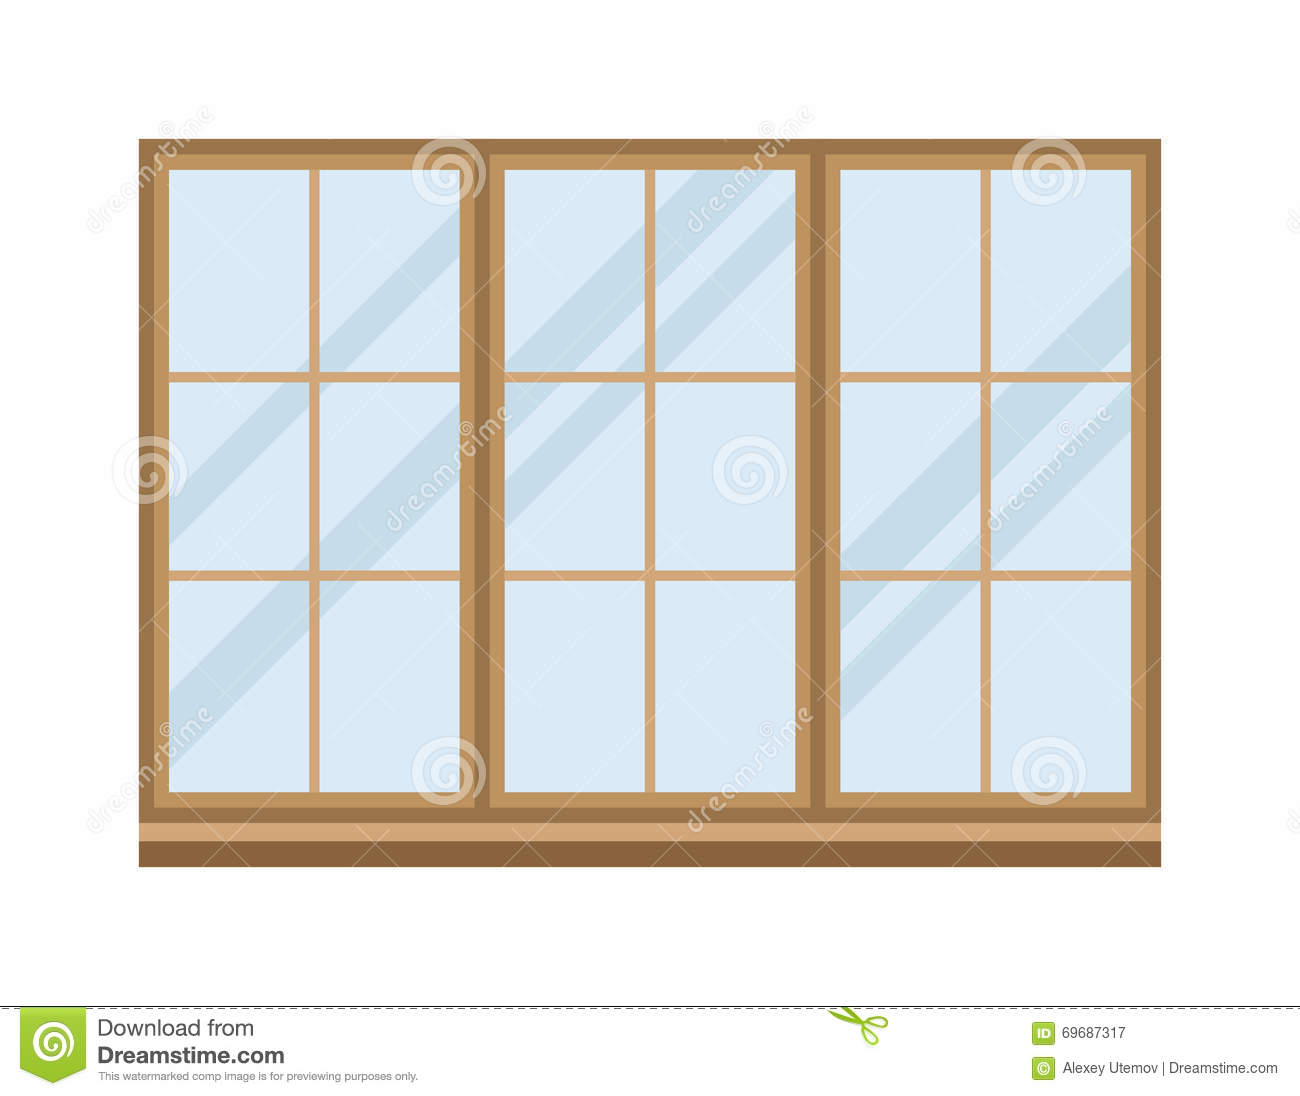 House windows pictures - Royalty Free Vector Download Different Types House Windows